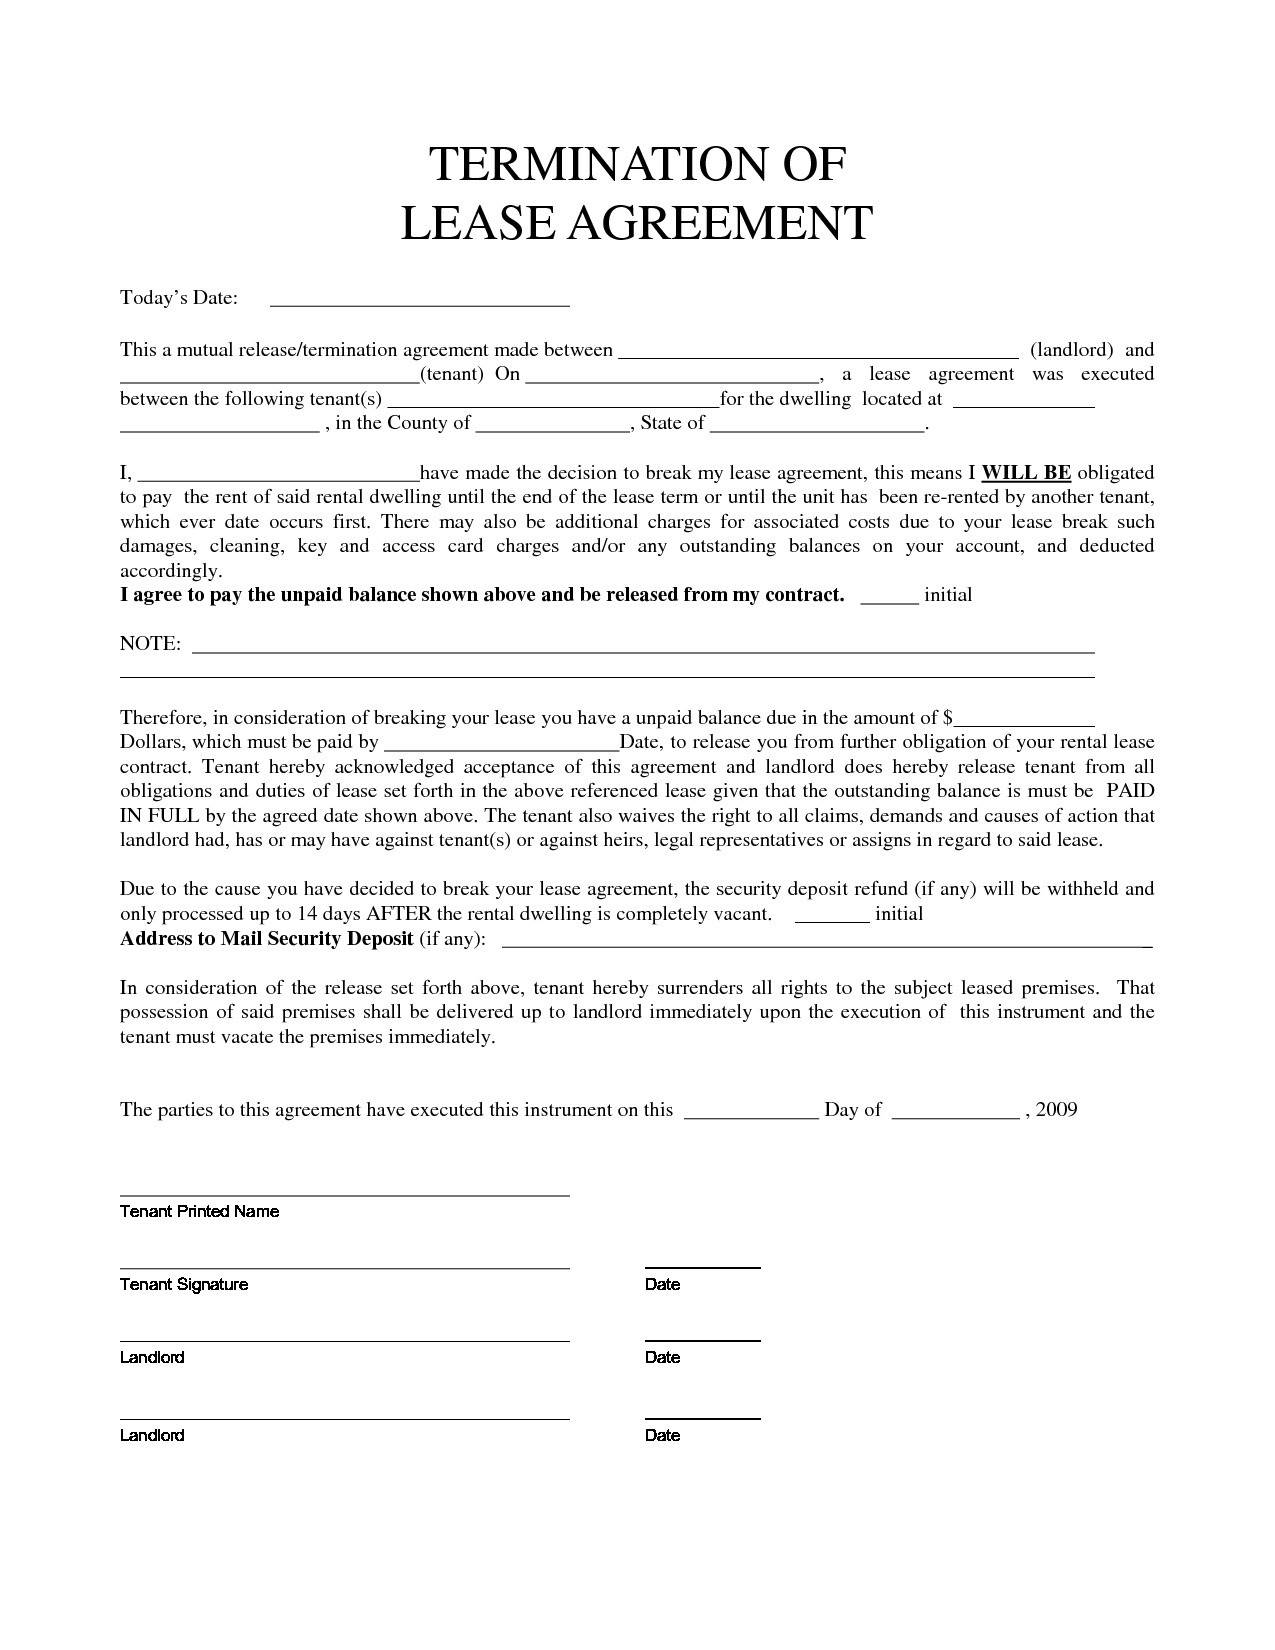 Template Termination Of Lease Agreement